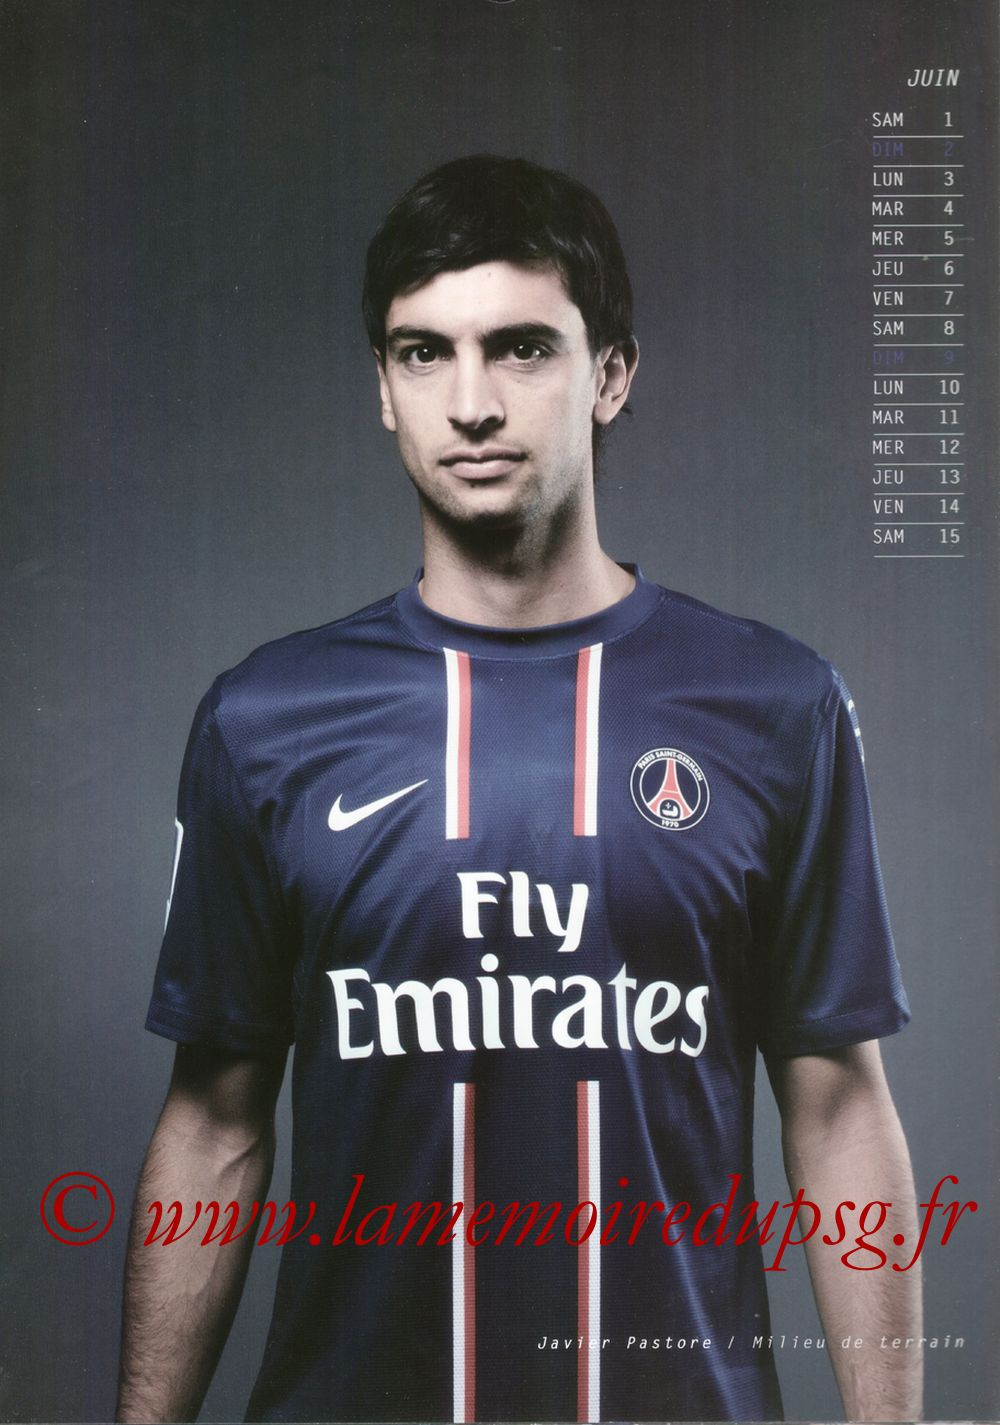 Calendrier PSG 2013 - Page 11 - Javier PASTORE